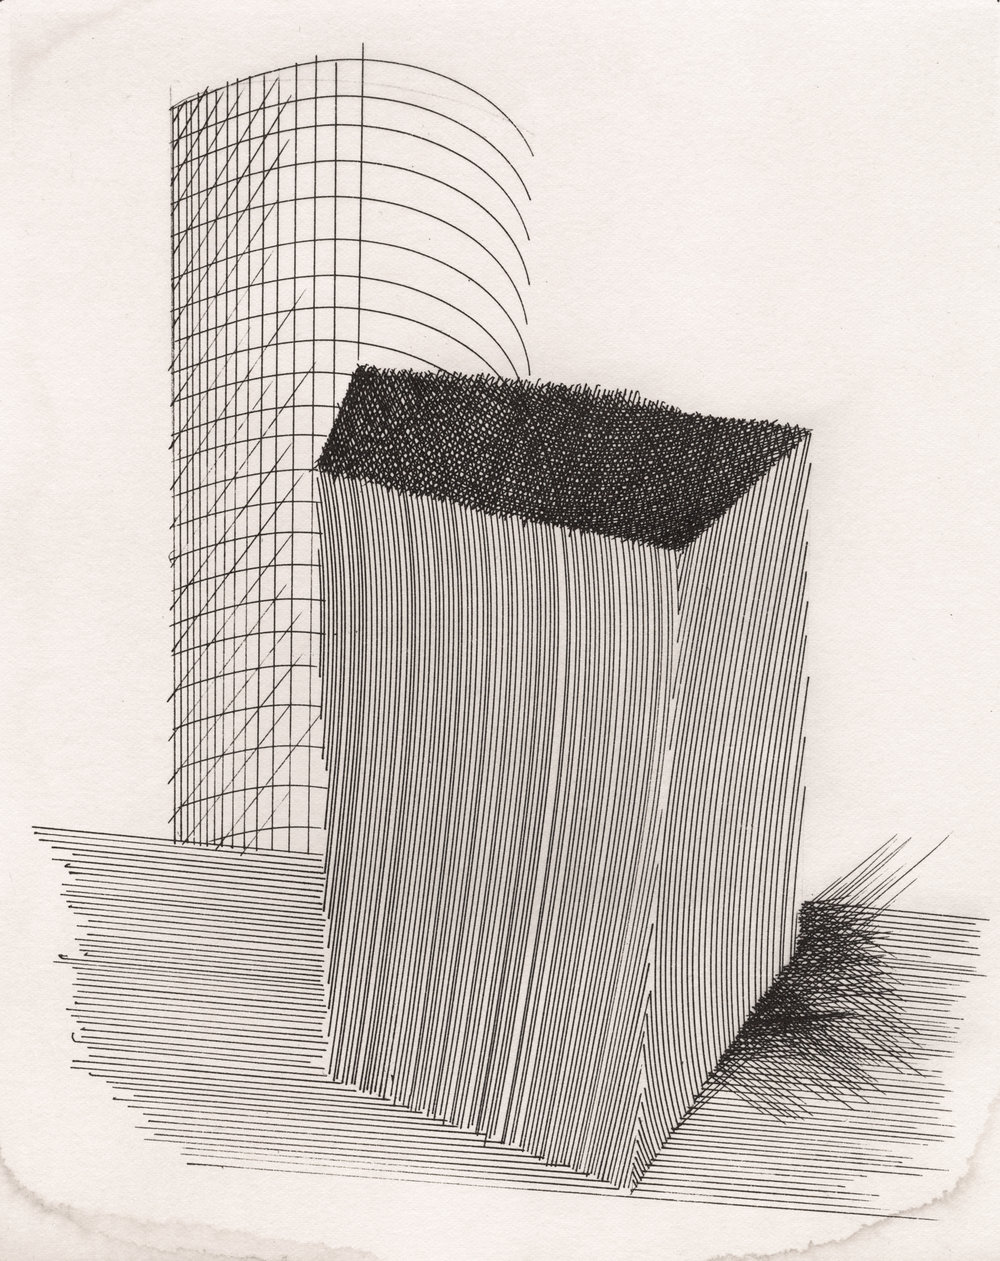 Silo , 1995 Platinum print (from original ink drawing, 1984) on paper © The Irving Penn Foundation